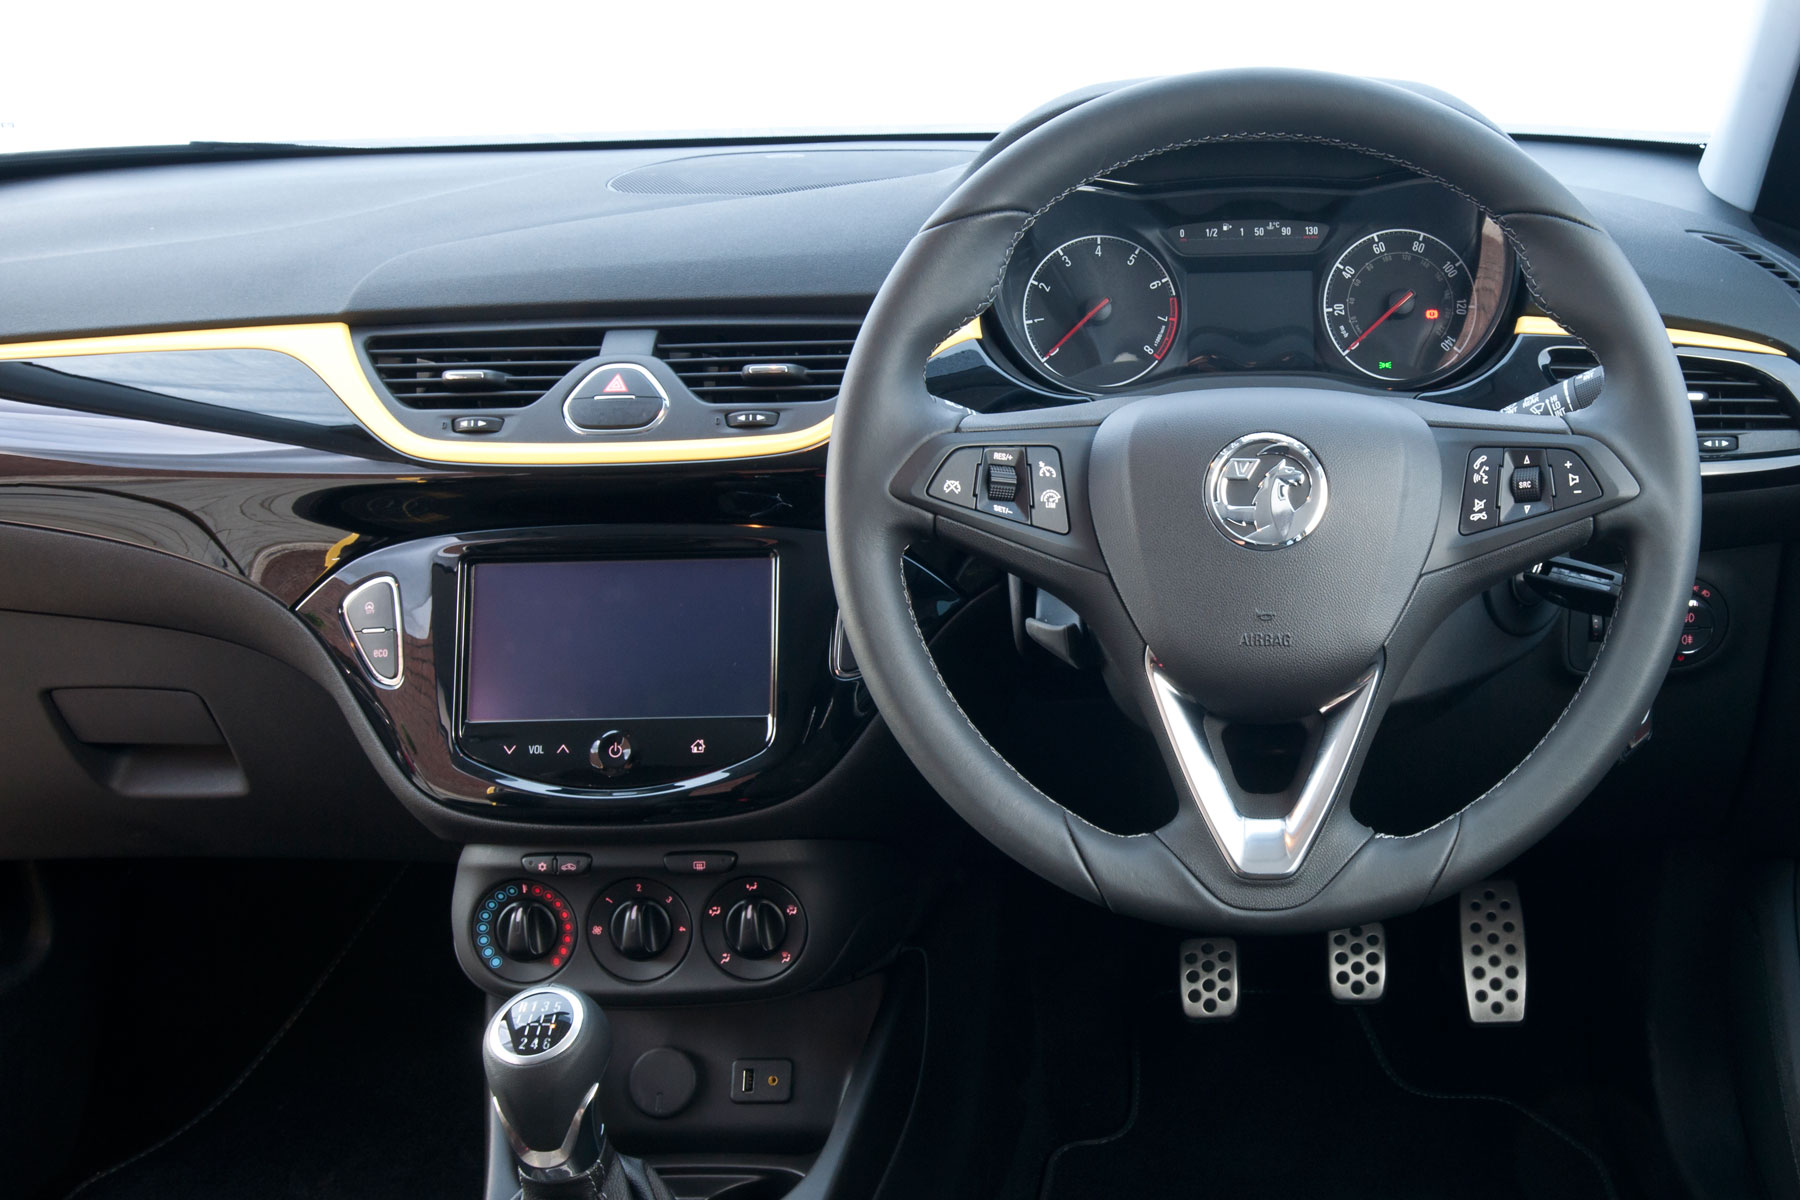 Is the Vauxhall Corsa's city steering pointless?